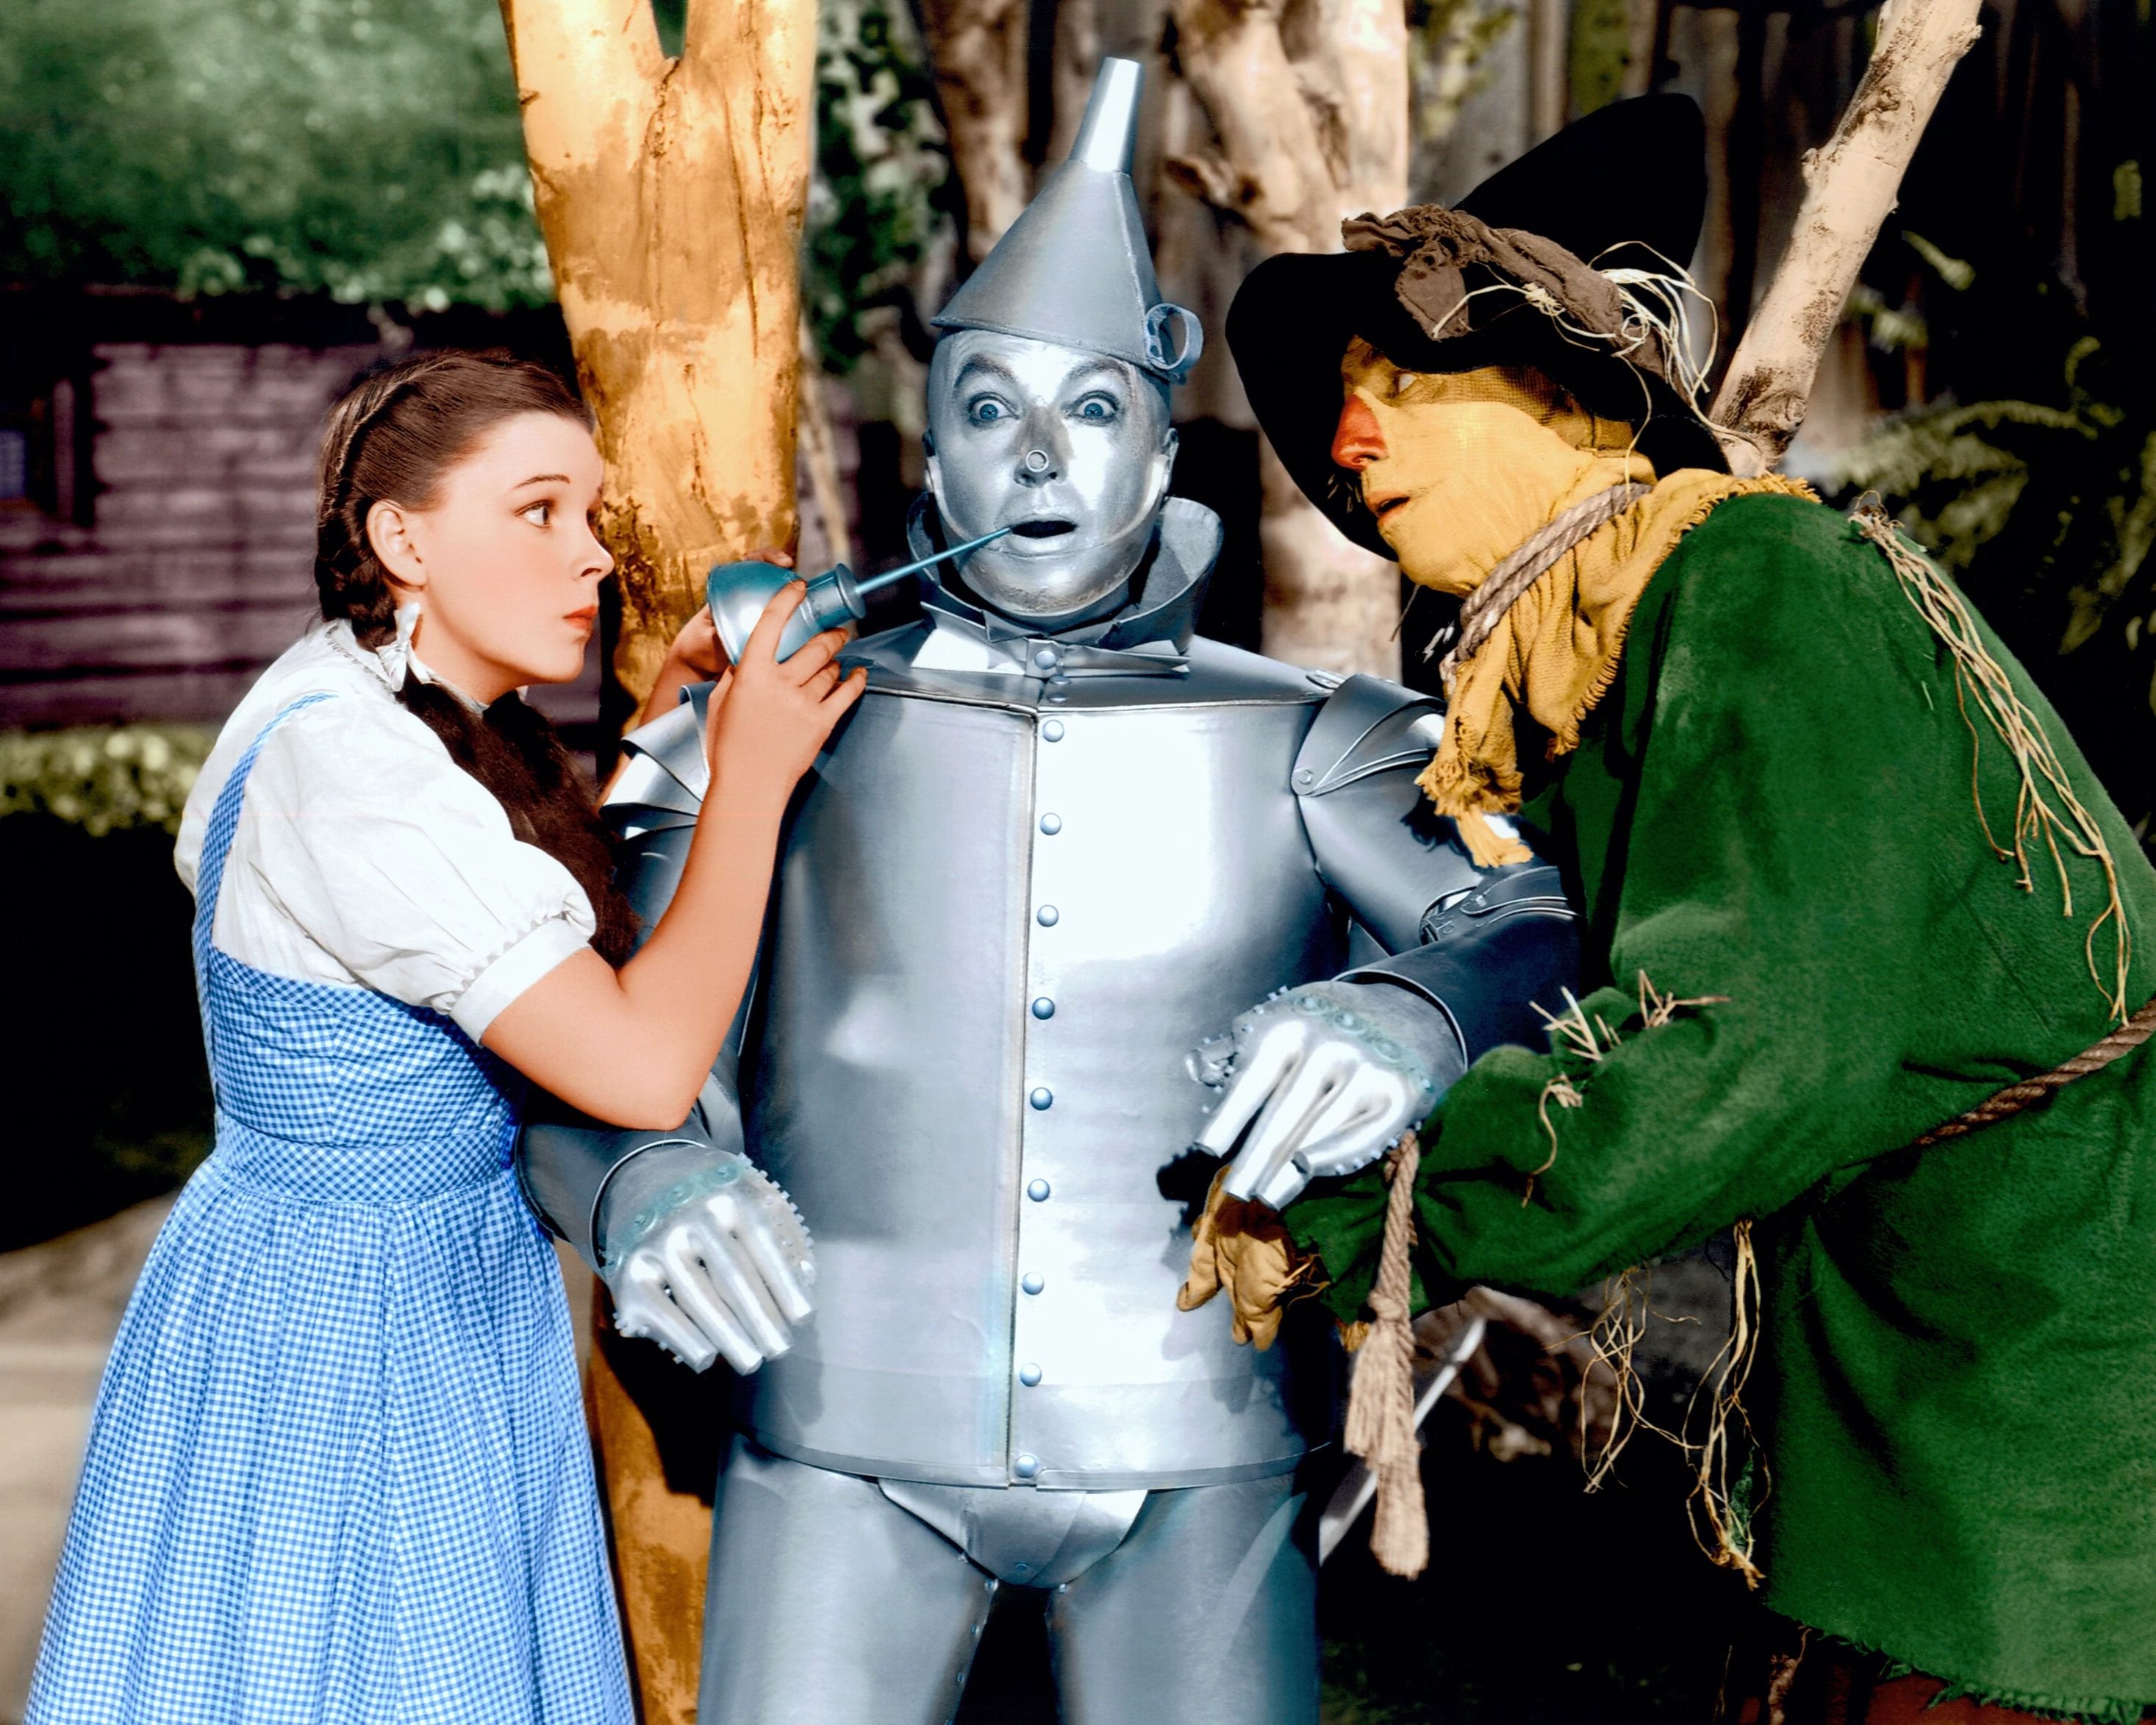 Oil Can Wizard of oz movie Wizard of oz